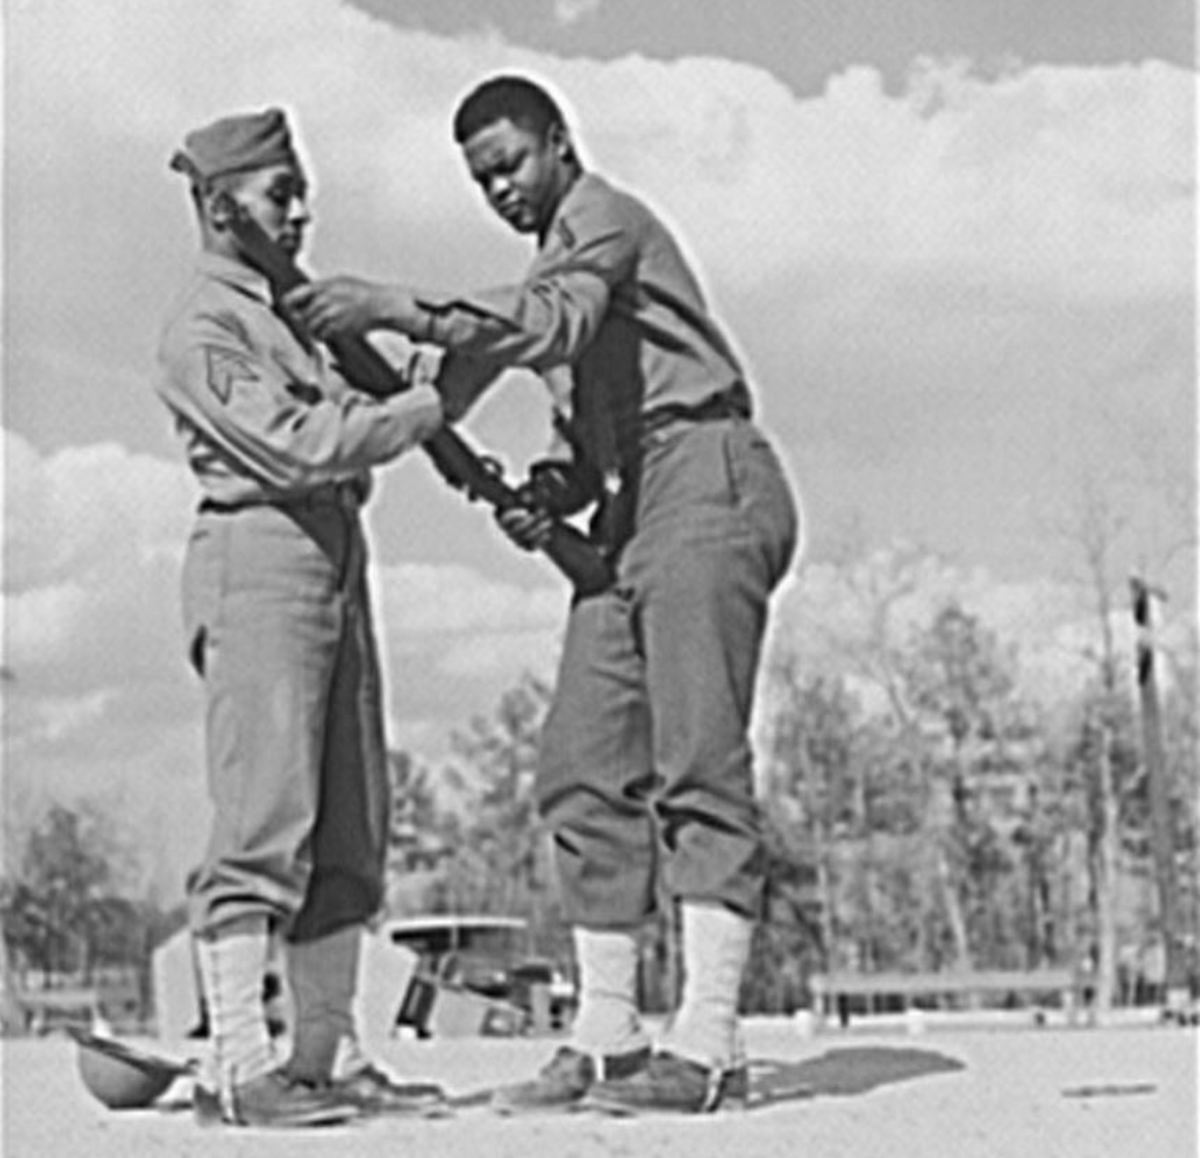 Sgt Williams showing a soldier how to handle his rifle